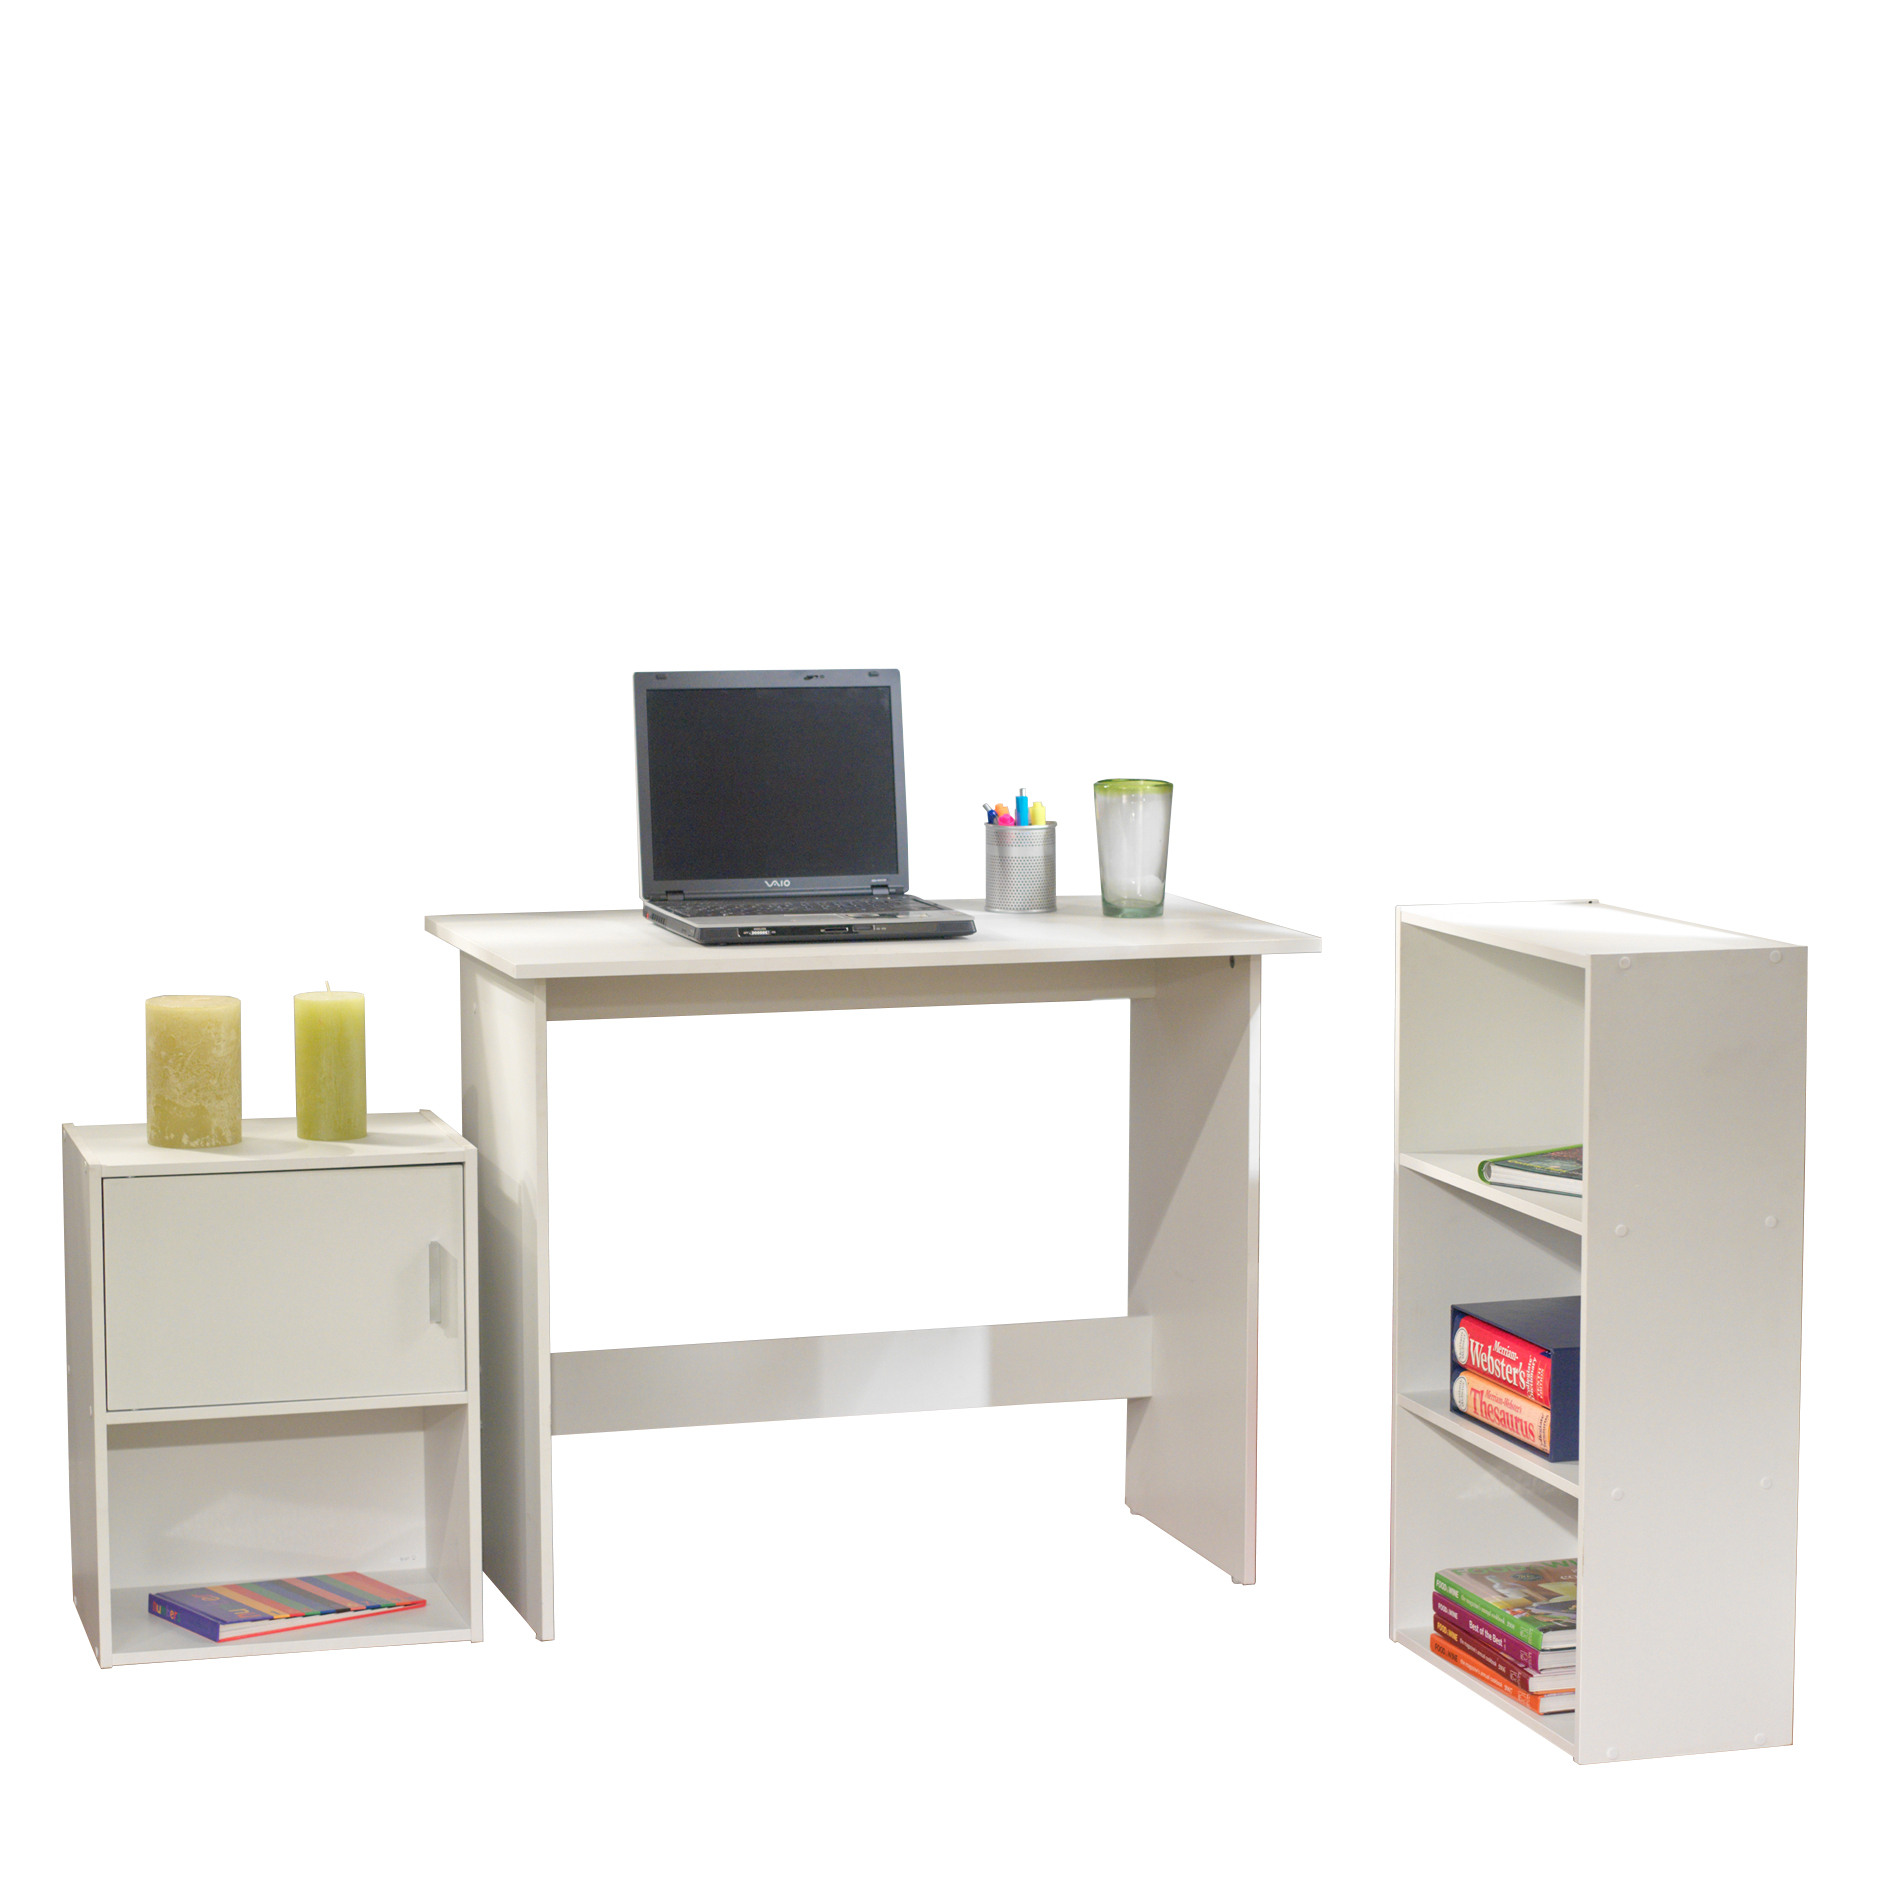 Soho 31 Piece Office Collection with Desk, Bookcase and Storage Cube, White  Finish